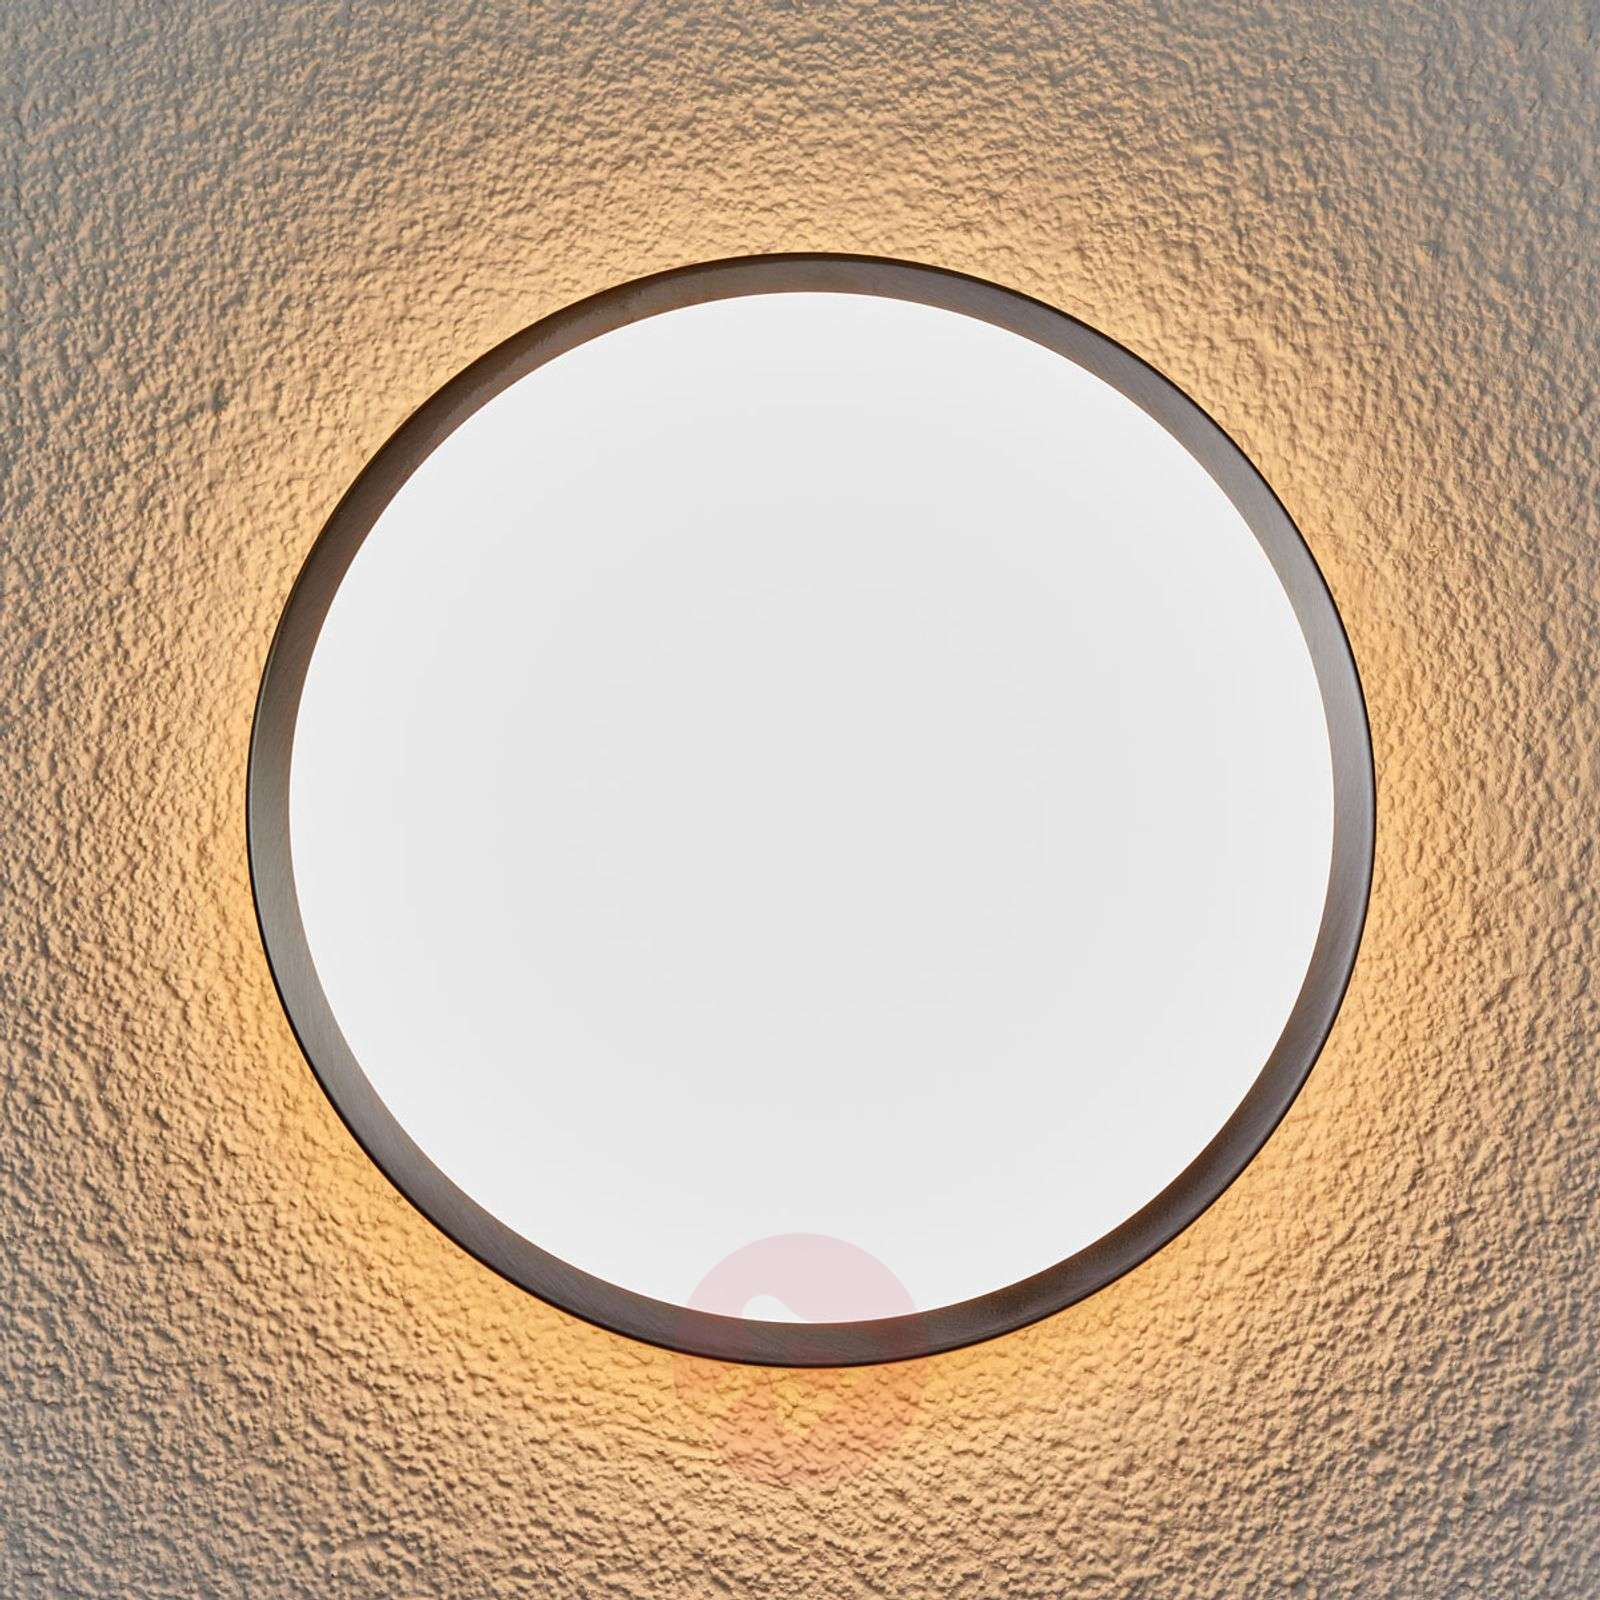 Led outdoor wall lamp noxlite circular with sensor lights led outdoor wall lamp noxlite circular with sensor 7261125 011 mozeypictures Image collections